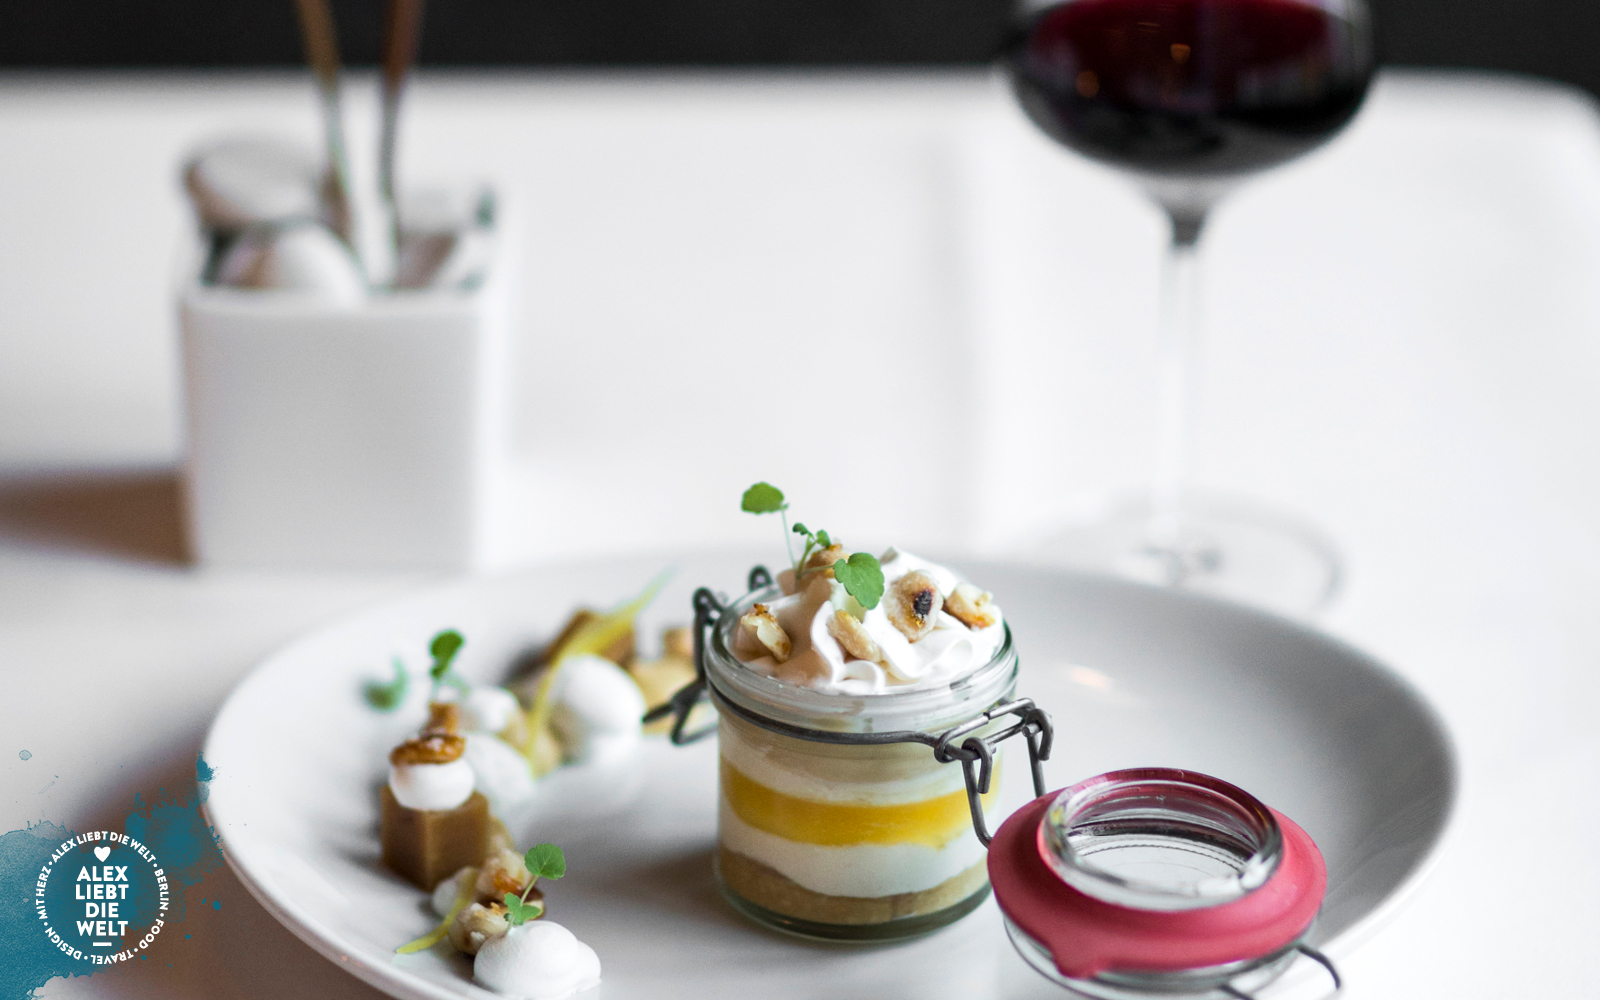 Alex liebt Berlin – Food & City Guide: Dessert im Restaurant Kopps